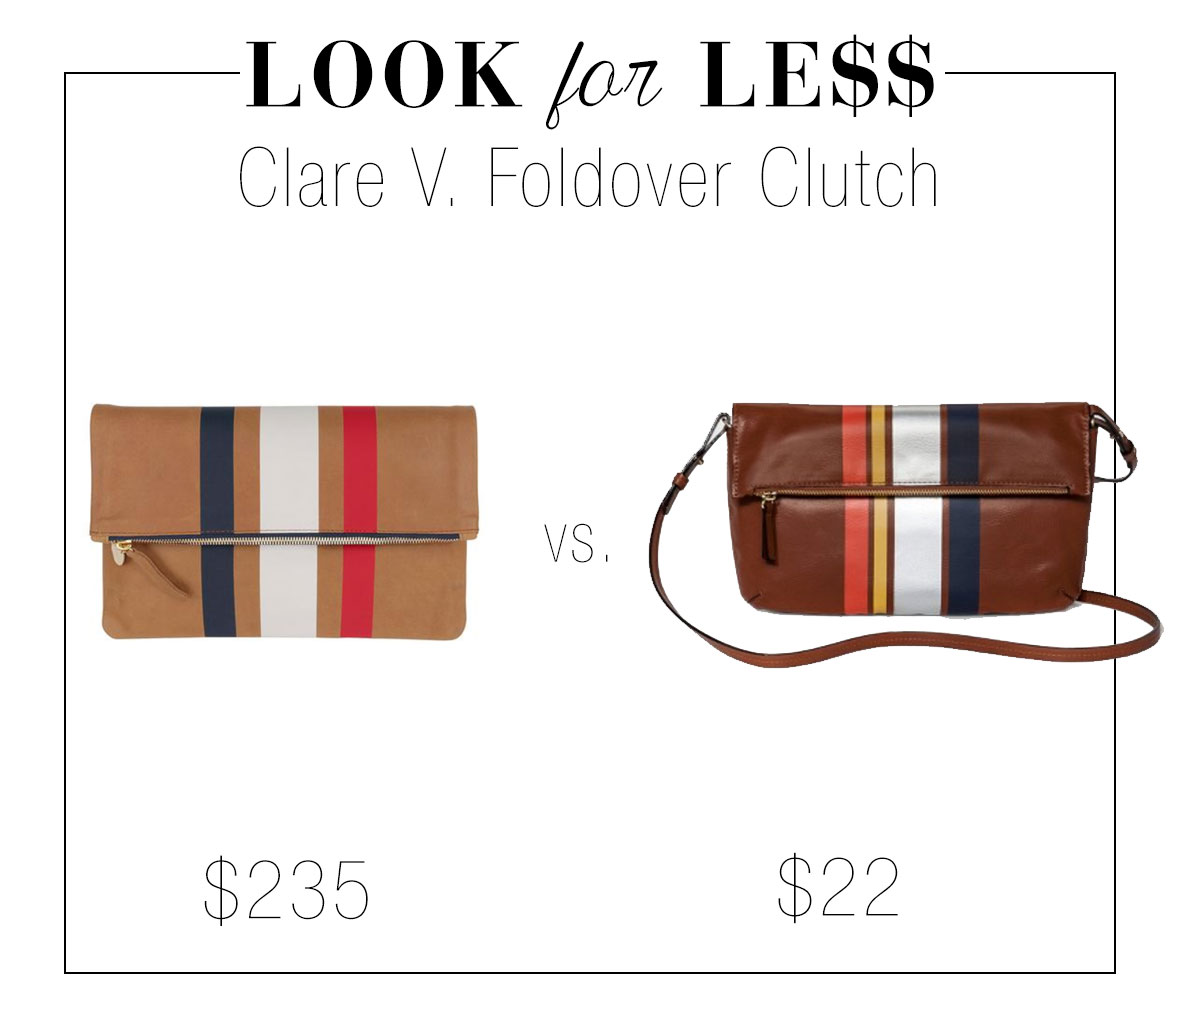 Clare V. striped clutch look for less